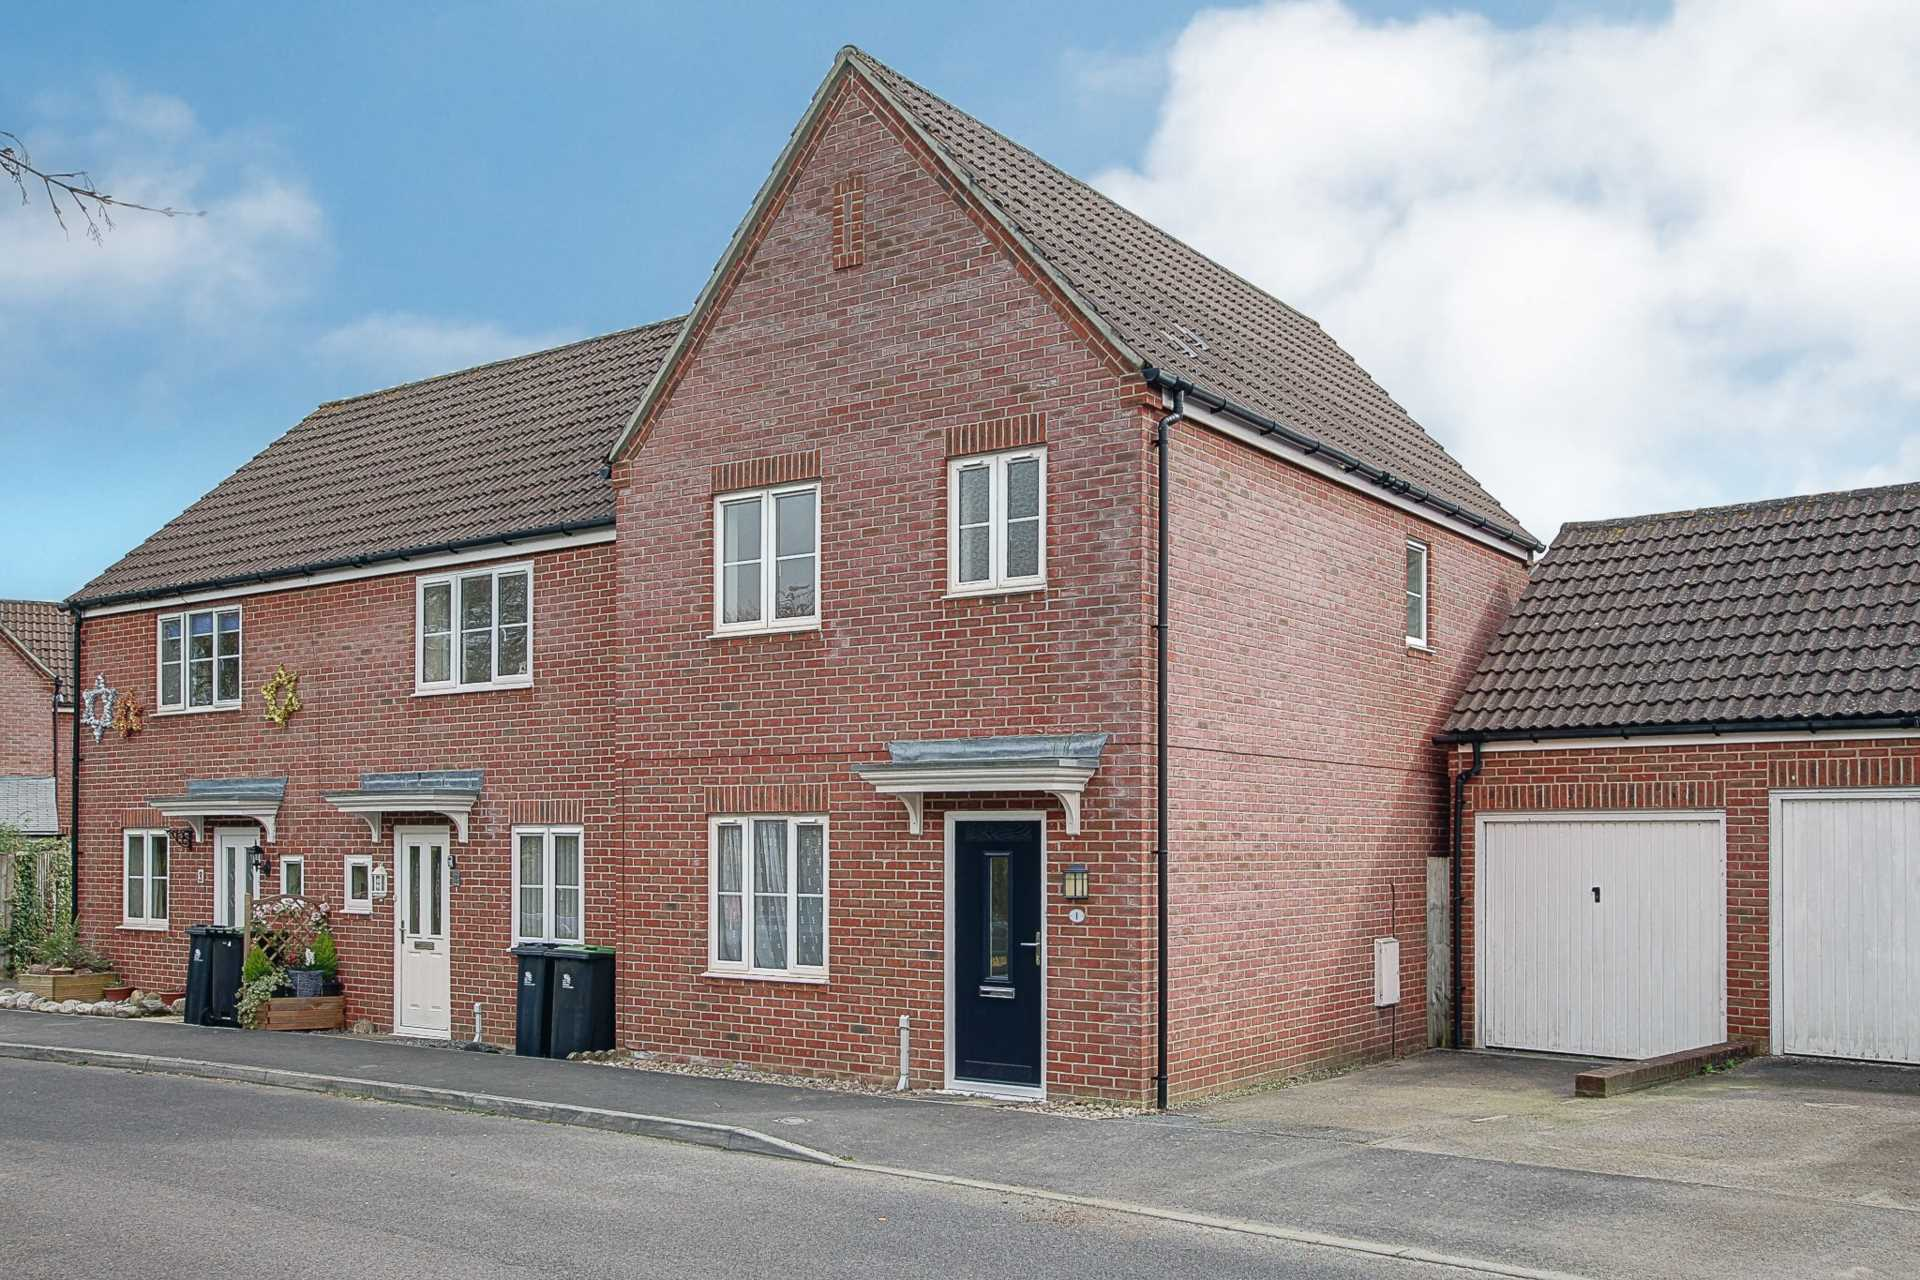 3 bed end of terrace house to rent in Chivrick Close, Sturminster Newton 0